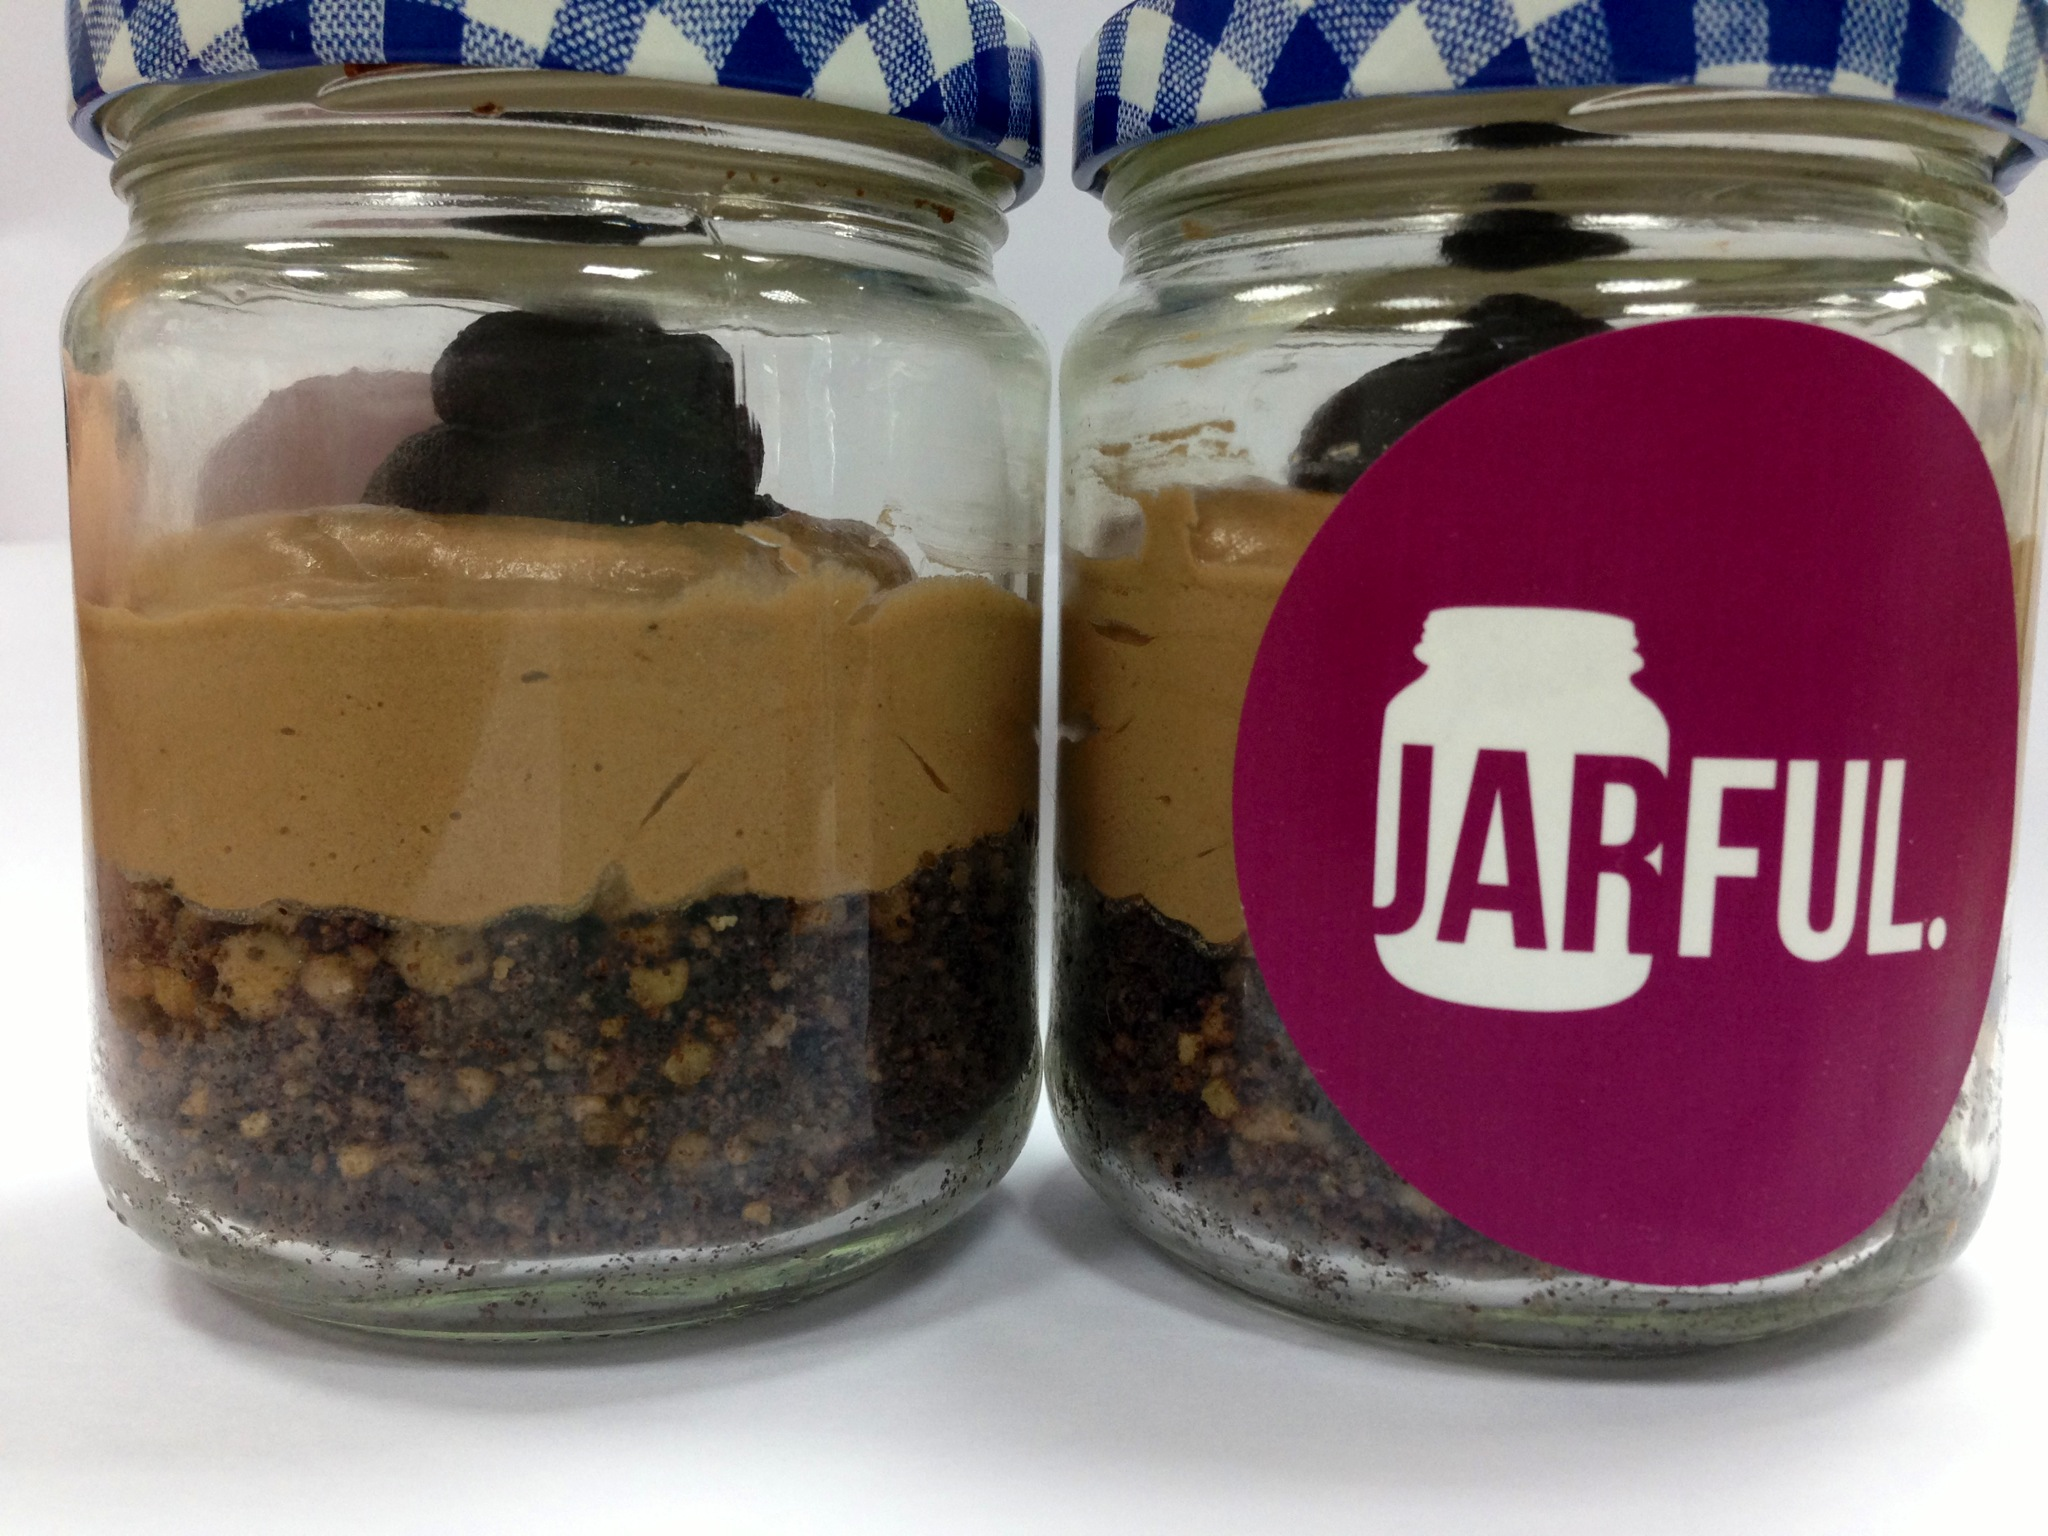 The presentation of the jars are simple and the portions are just-right.  Jarful is perfect for any event, from birthdays to engagement parties.